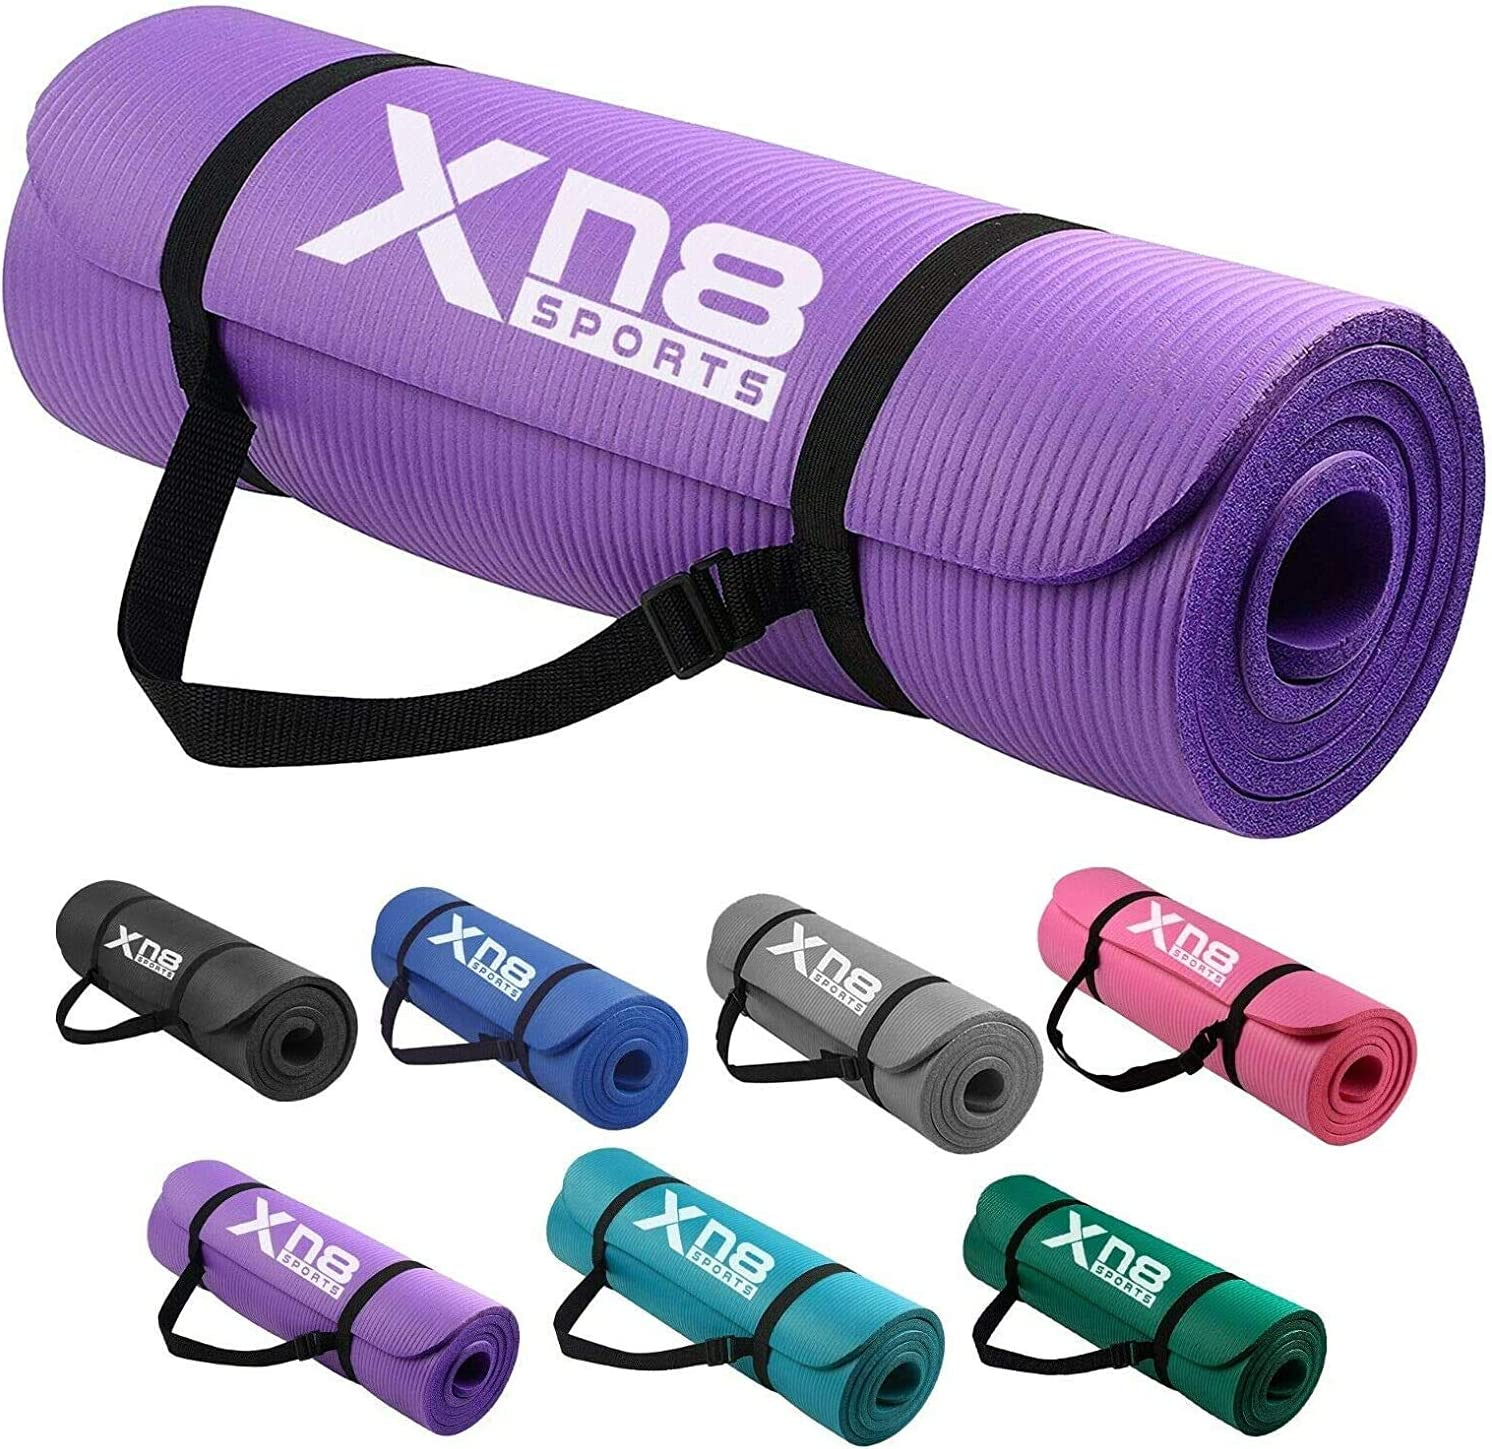 Xn8 Yoga Mat 1//2-Inch Extra Thick All-Purpose Non Slip High Density Anti-Tear Exercise Yoga Mats with Carrying Strap